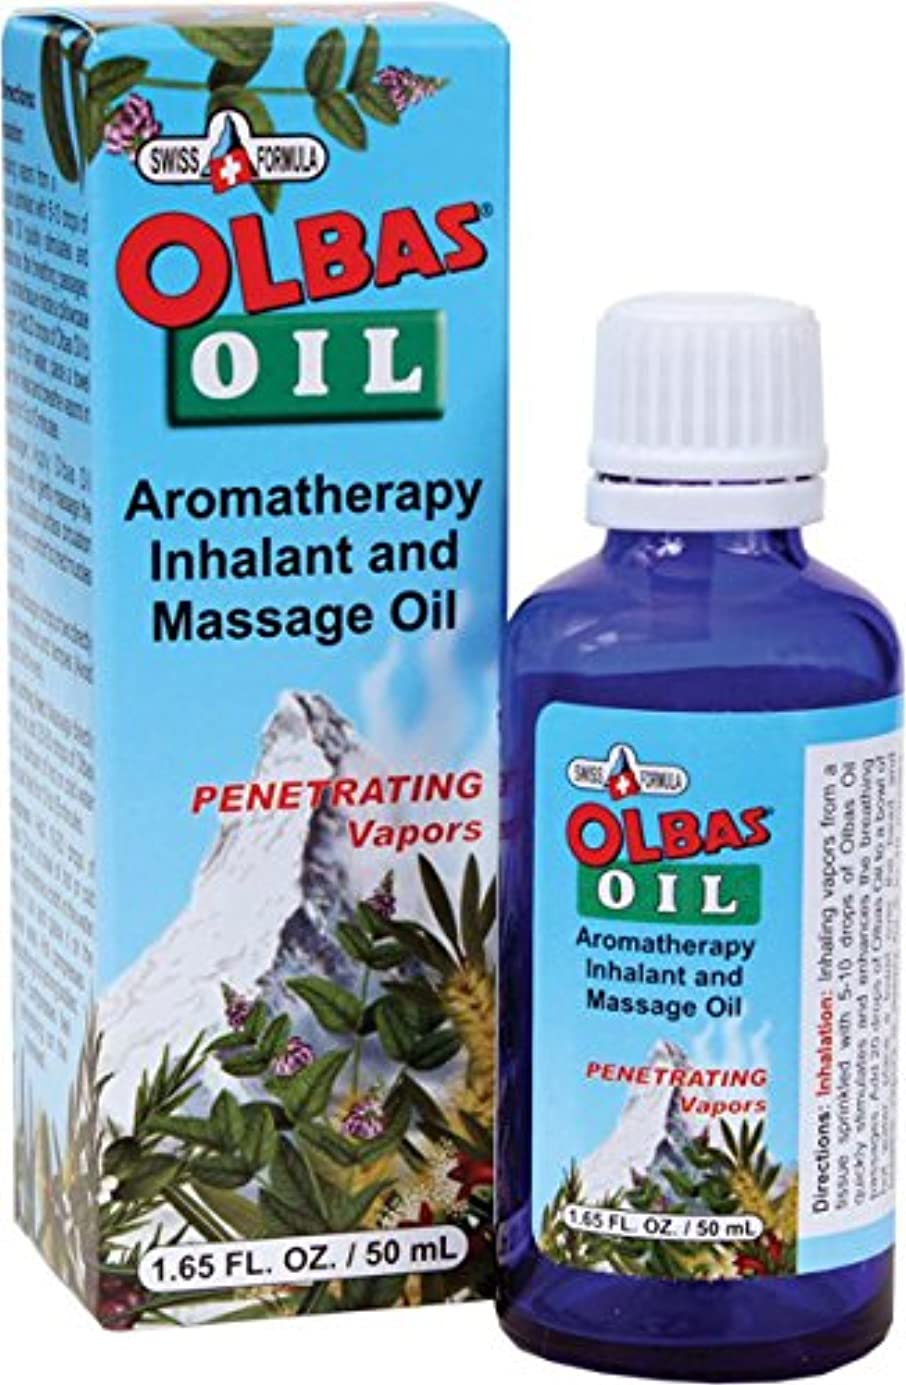 磁器もちろん呼吸するOlbas Therapeutic, Olbas Oil, Aromatherapy Inhalant and Massage Oil, 1.65 fl oz (50 ml)